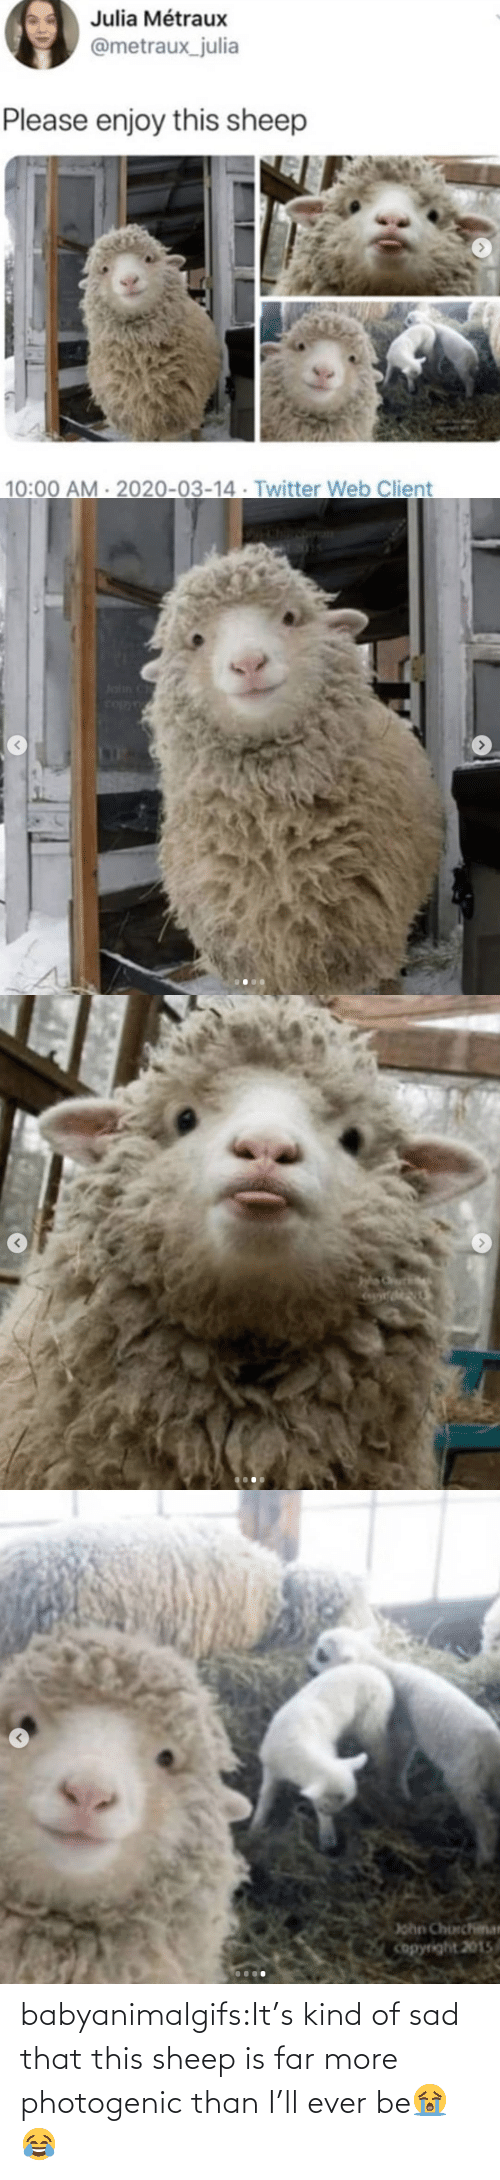 ever: babyanimalgifs:It's kind of sad that this sheep is far more photogenic than I'll ever be😭😂